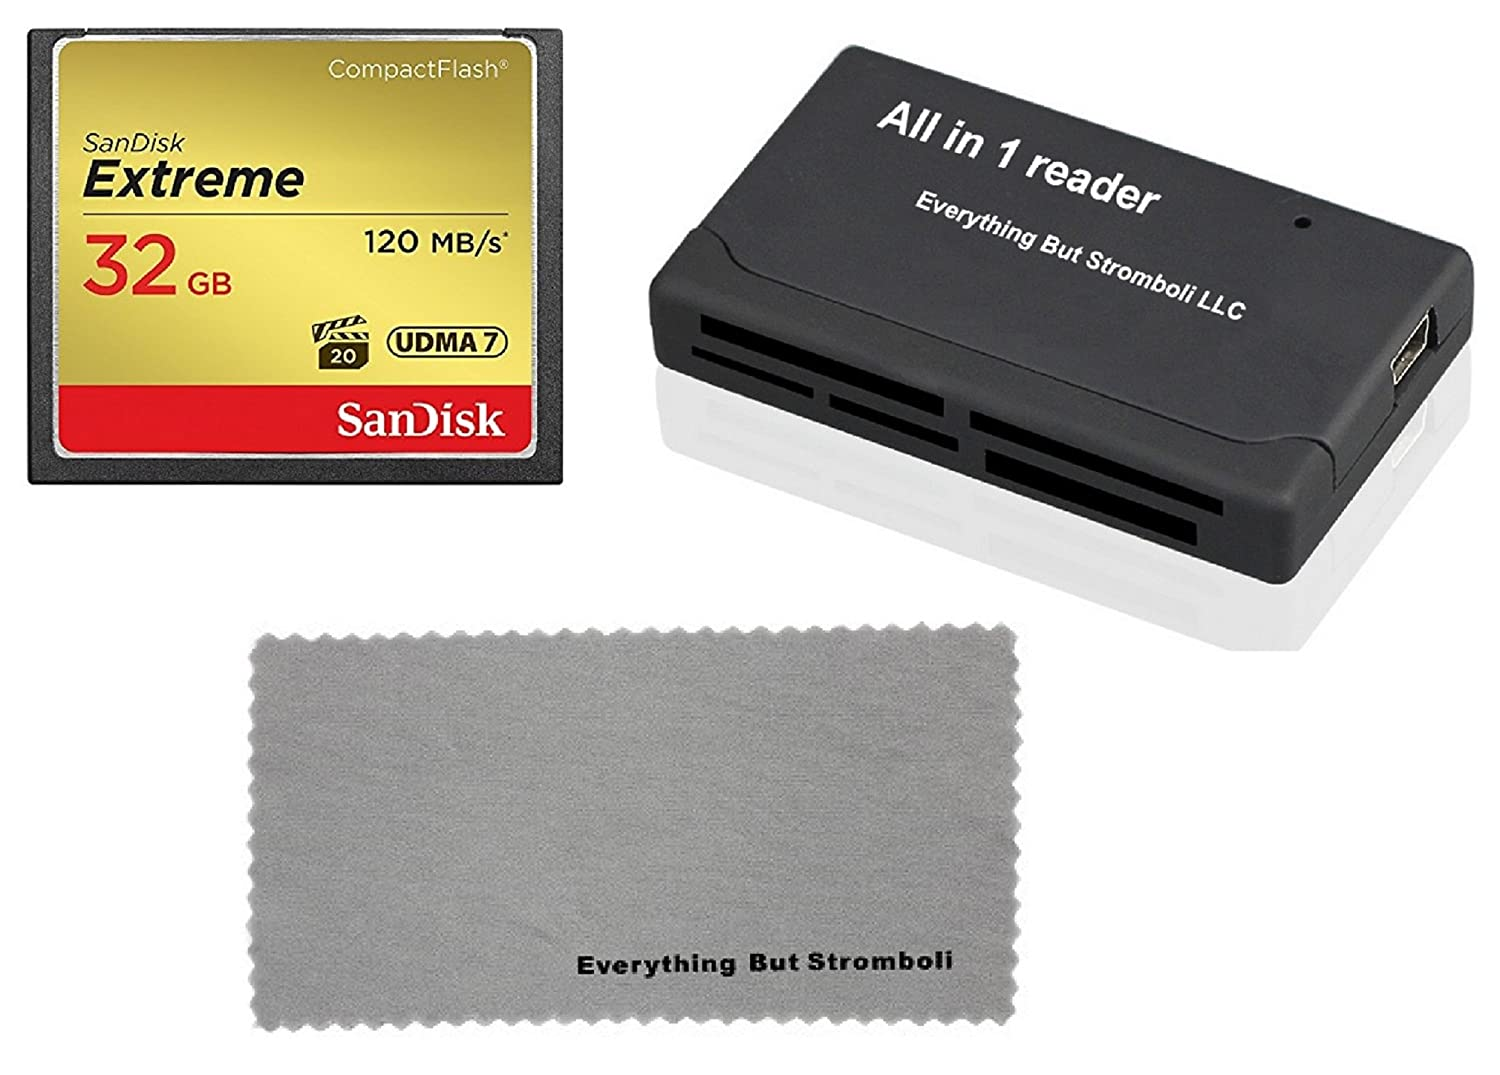 SanDisk Extreme 32GB CompactFlash CF Memory Card for Nikon D300, D300S, D810, Digital DSLR Cameras HD UDMA 7 (SDCFXSB-032G-G46) with Everything But Stromboli Combo Microfiber Cloth and Combo Reader EBS 32G_CF_Extreme_EBSMFC